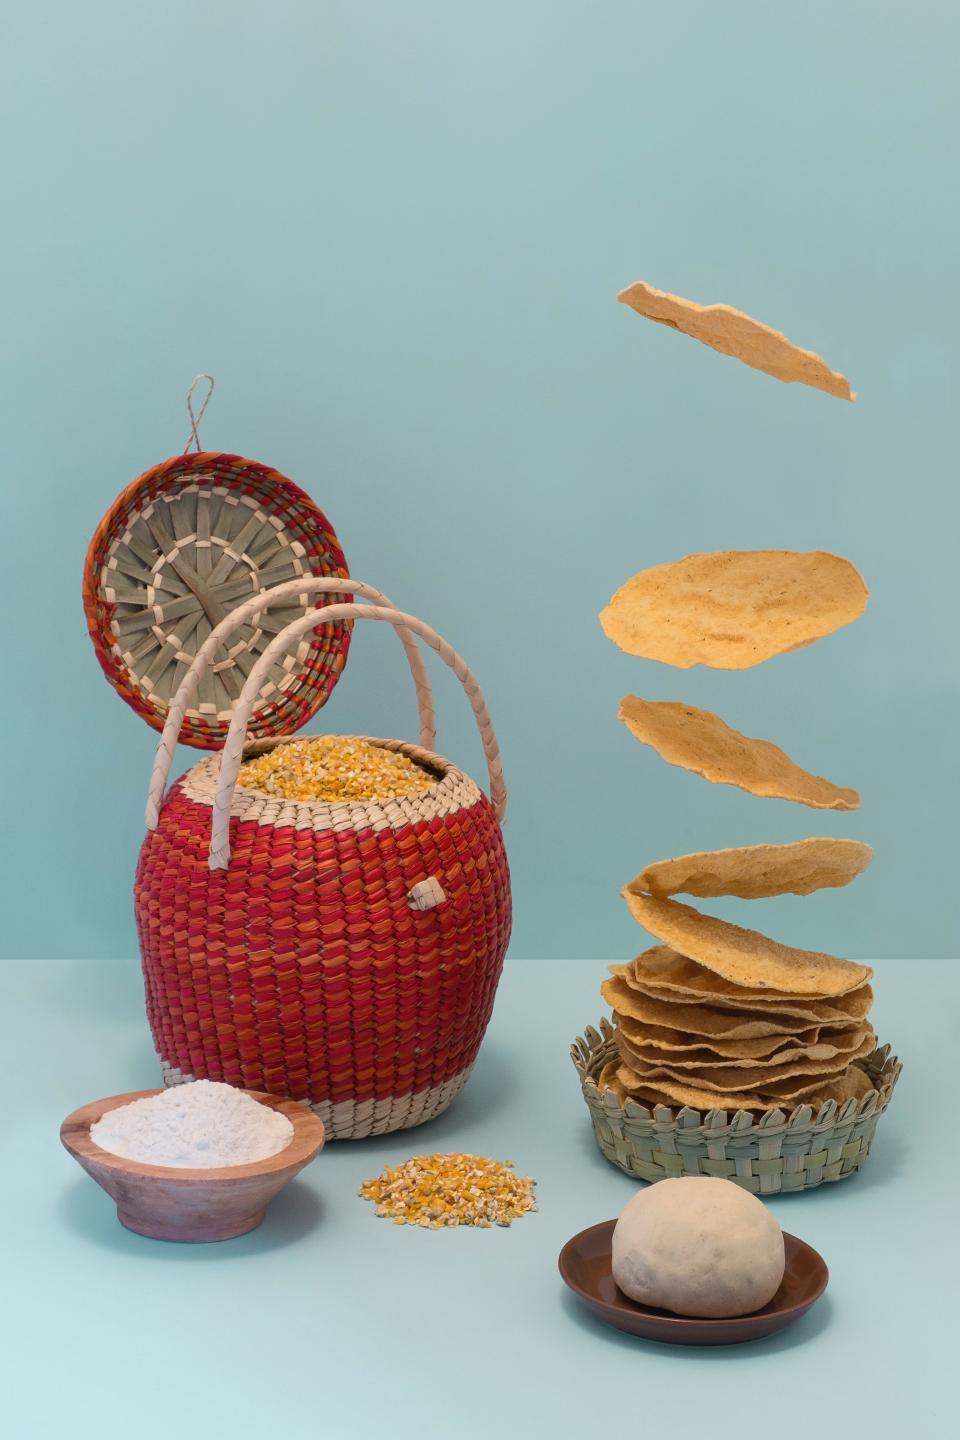 food picnic basket bowl plate corn chips